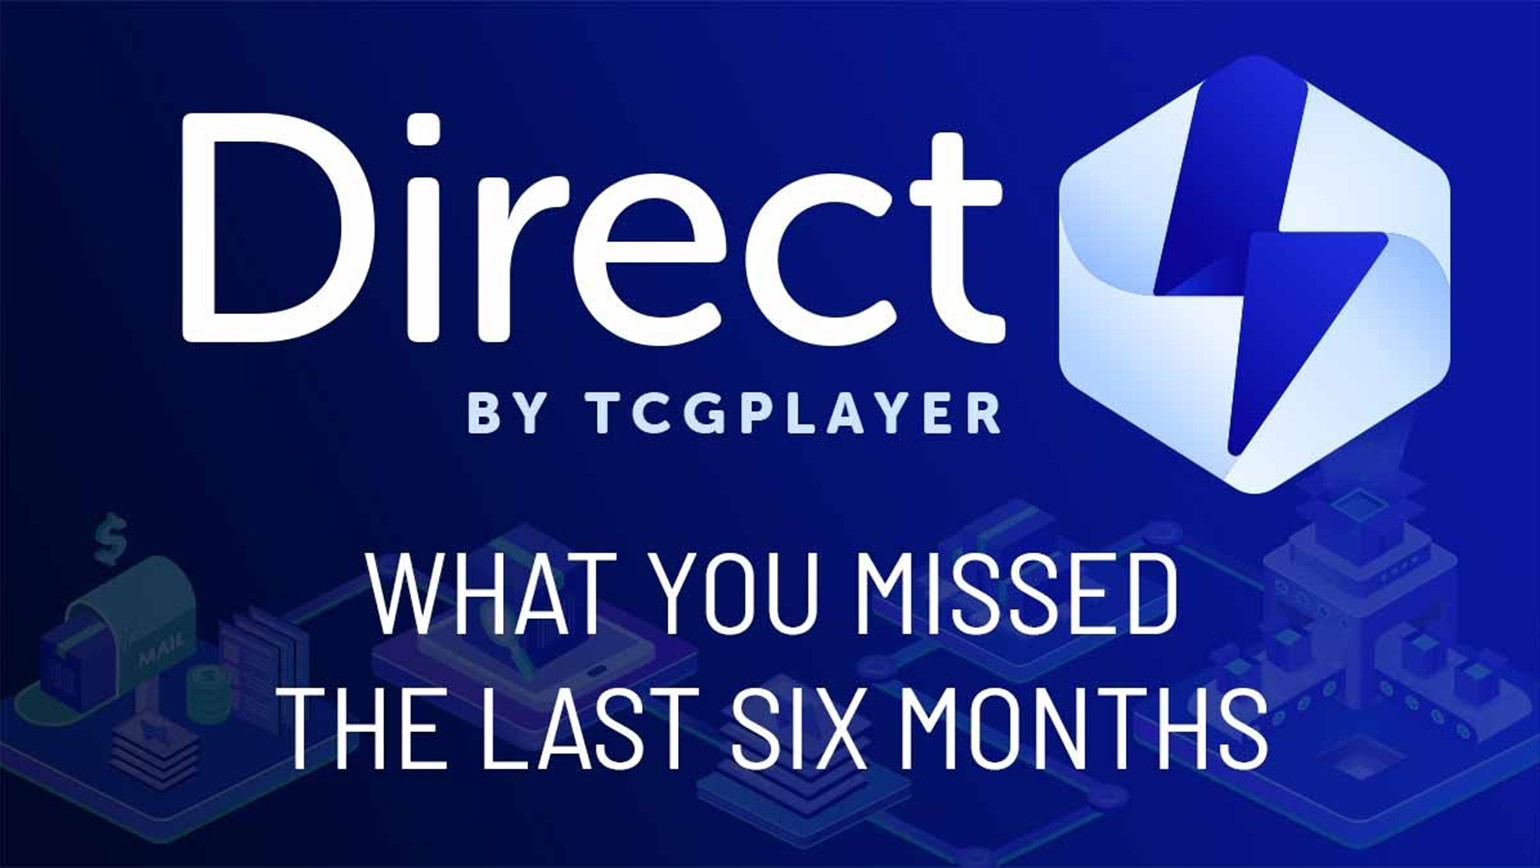 Direct by TCGplayer: What You Missed The Last Six Months